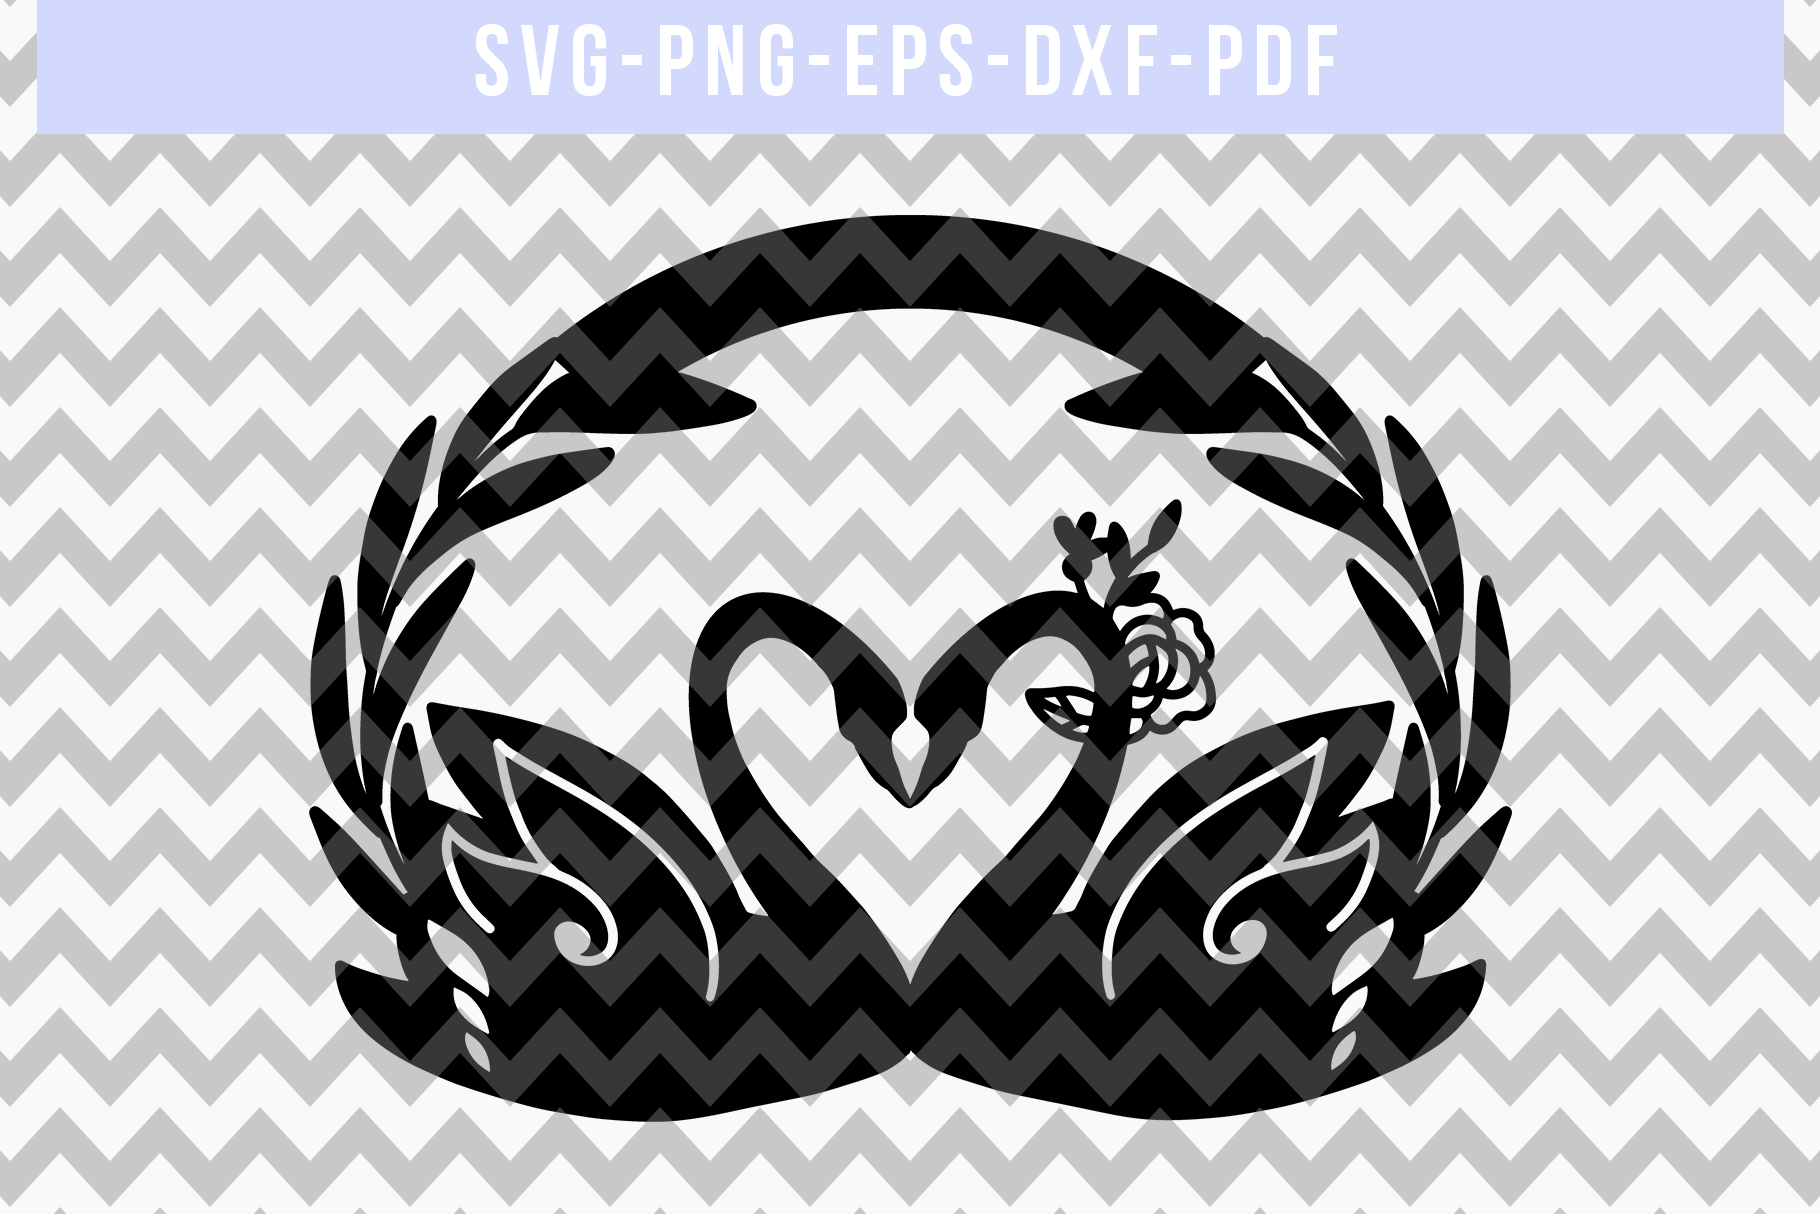 Customizable Wedding Swan Papercut Template, Lover SVG, DXF example image 4